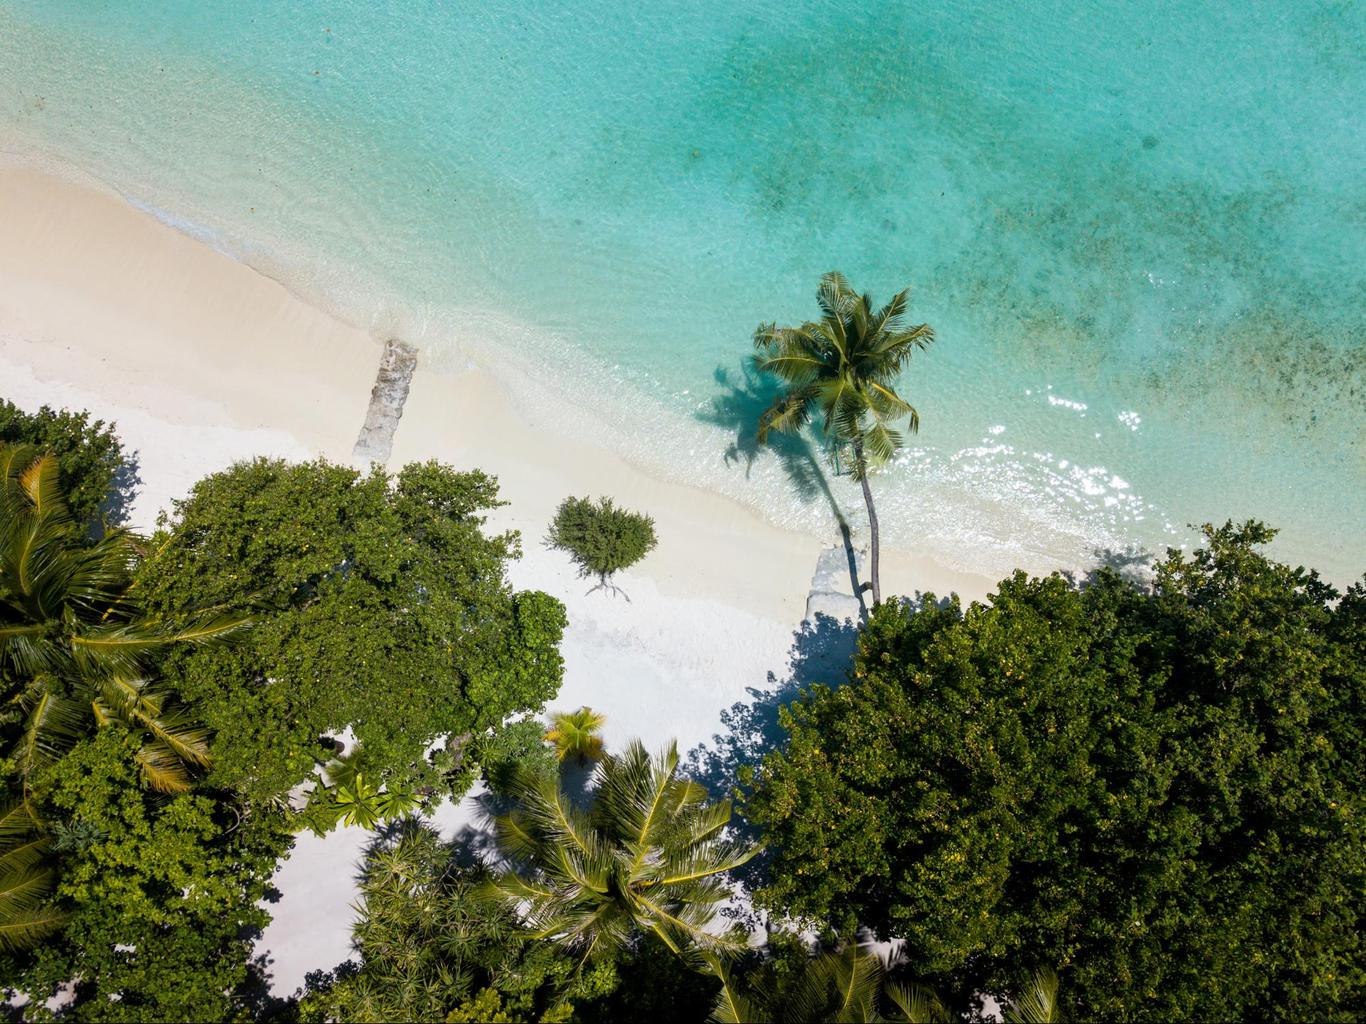 The white sand beach at LUX* Maldives